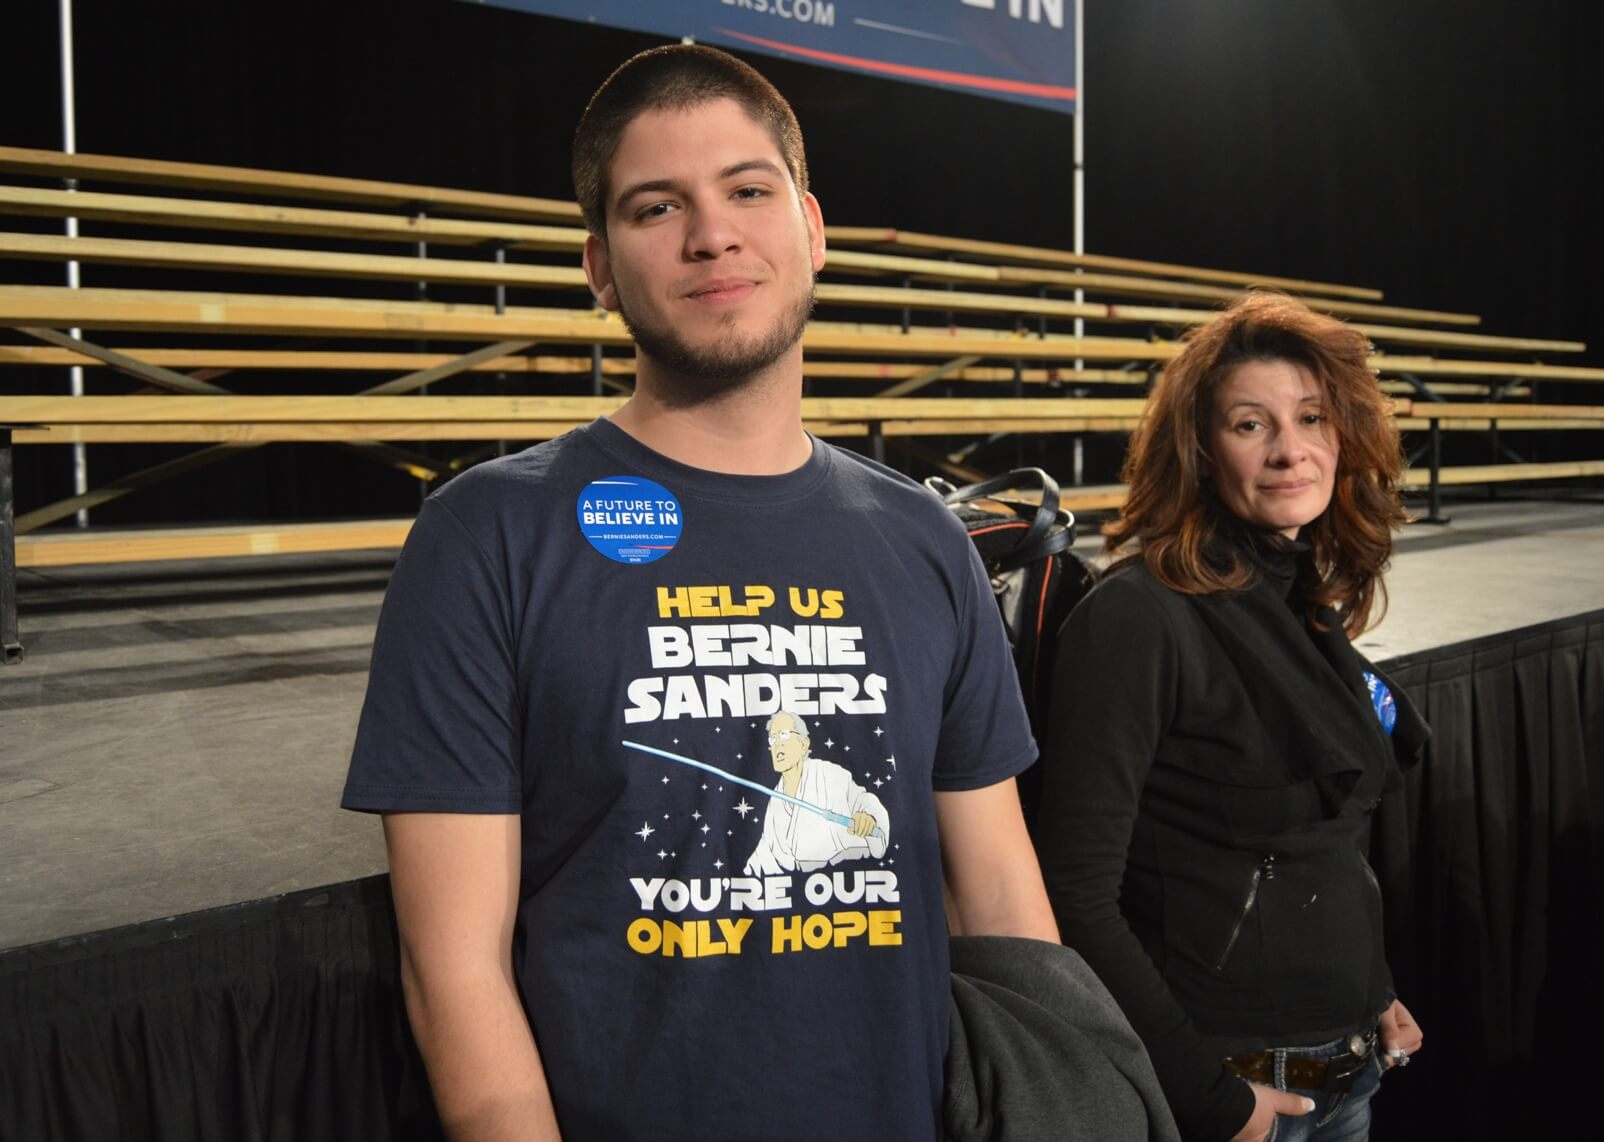 Sanders supporters at the rally in Kansas City